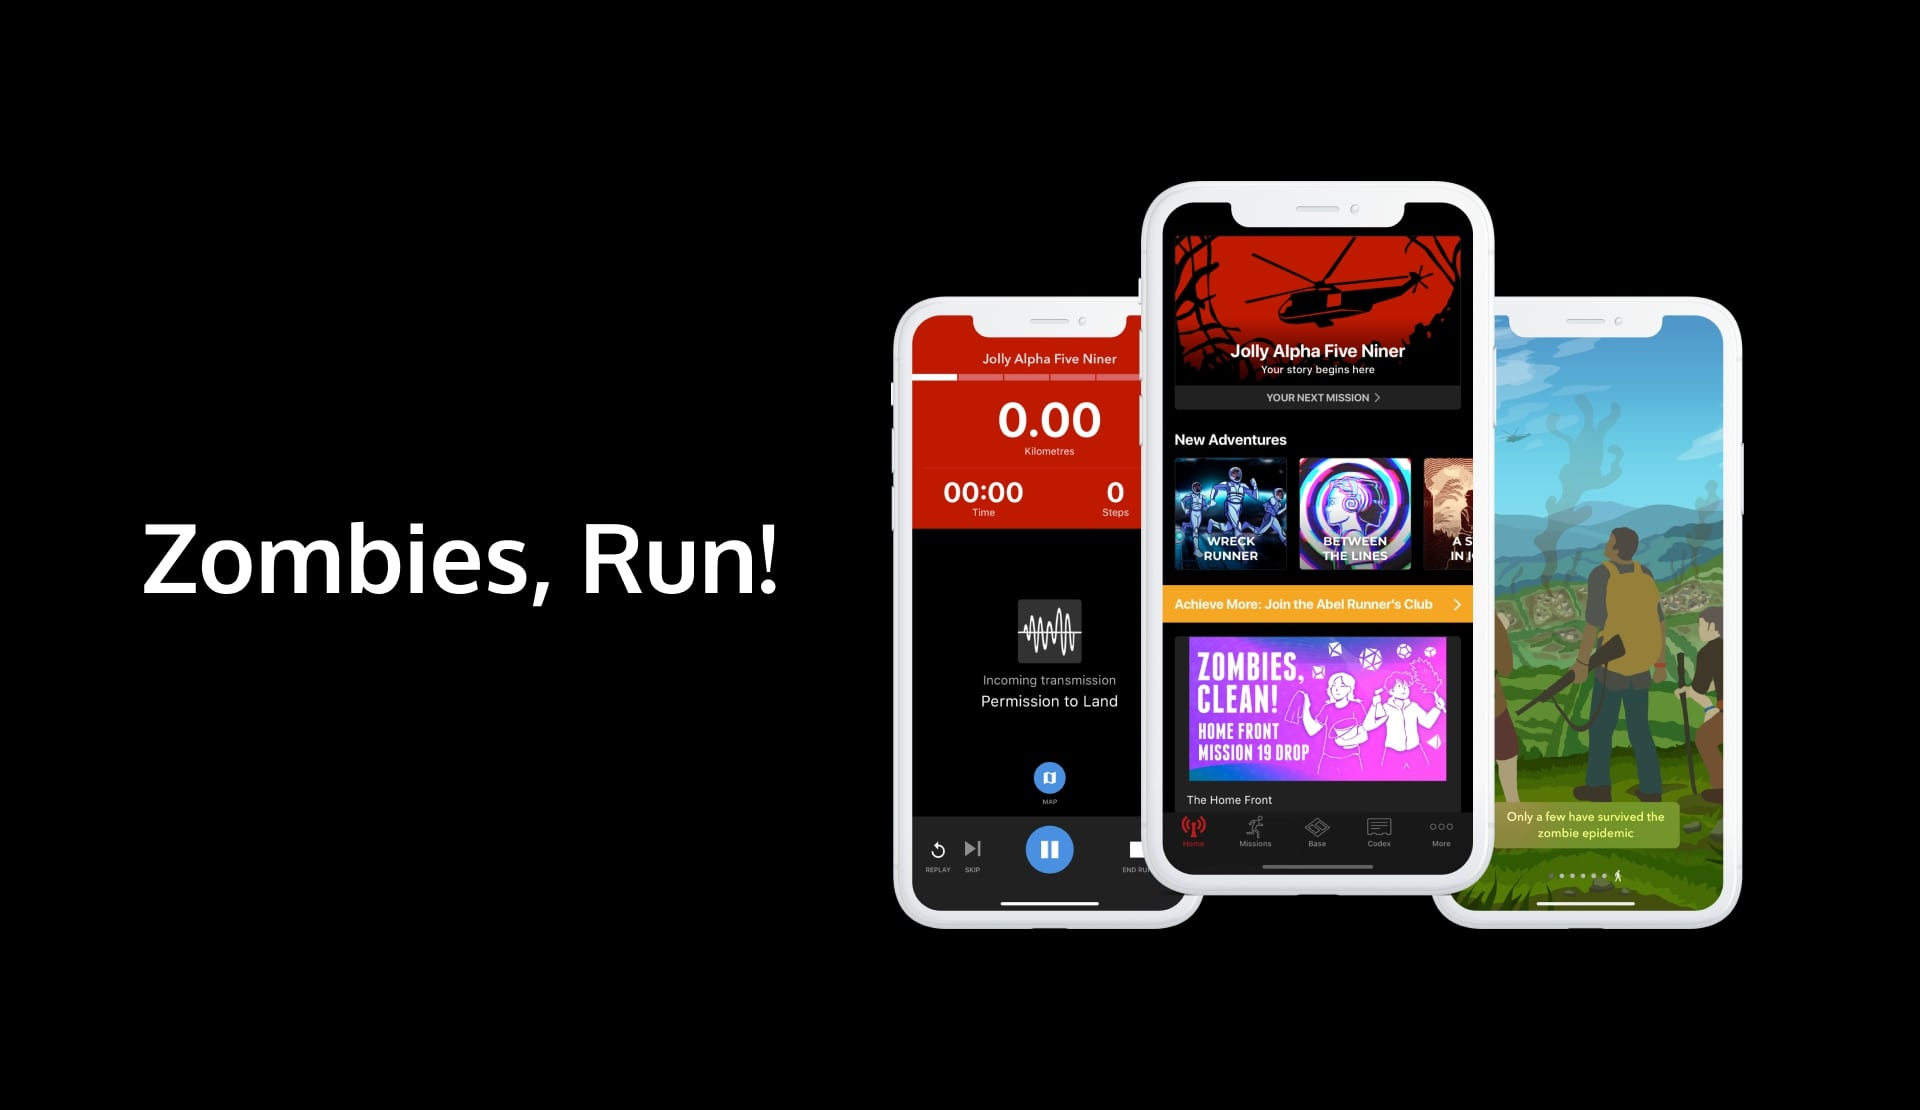 Zombies, Run - an augmented reality workout (running) app